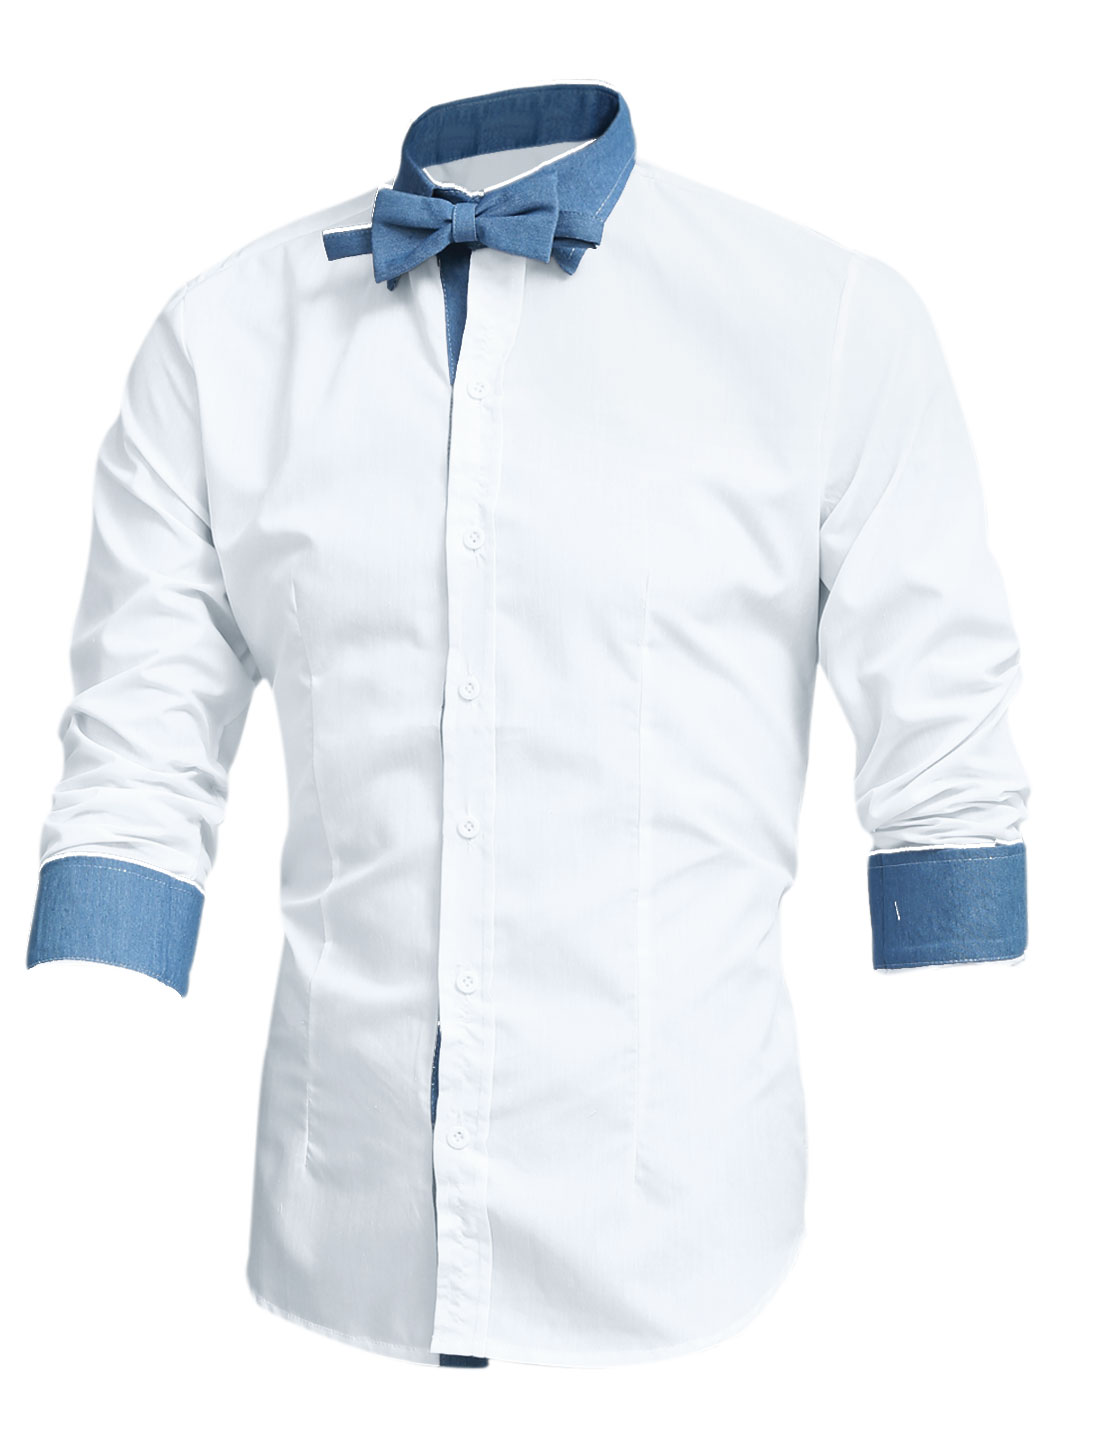 Men Contrast Color Spliced Single Breasted Shirt w Removable Bow Tie White M